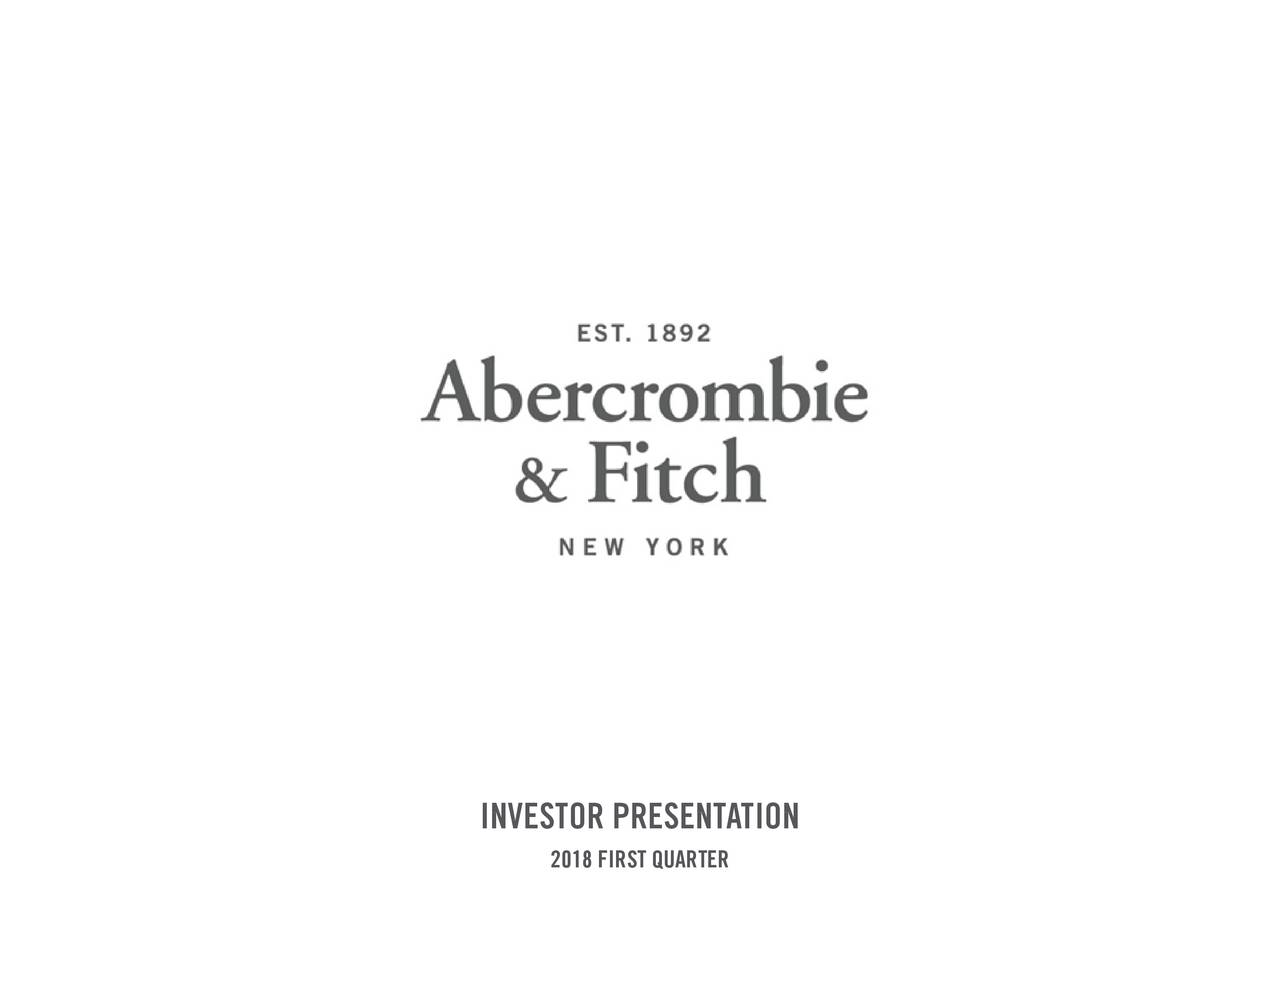 Abercrombie Fitch 2018 Q1 Results Earnings Call Slides